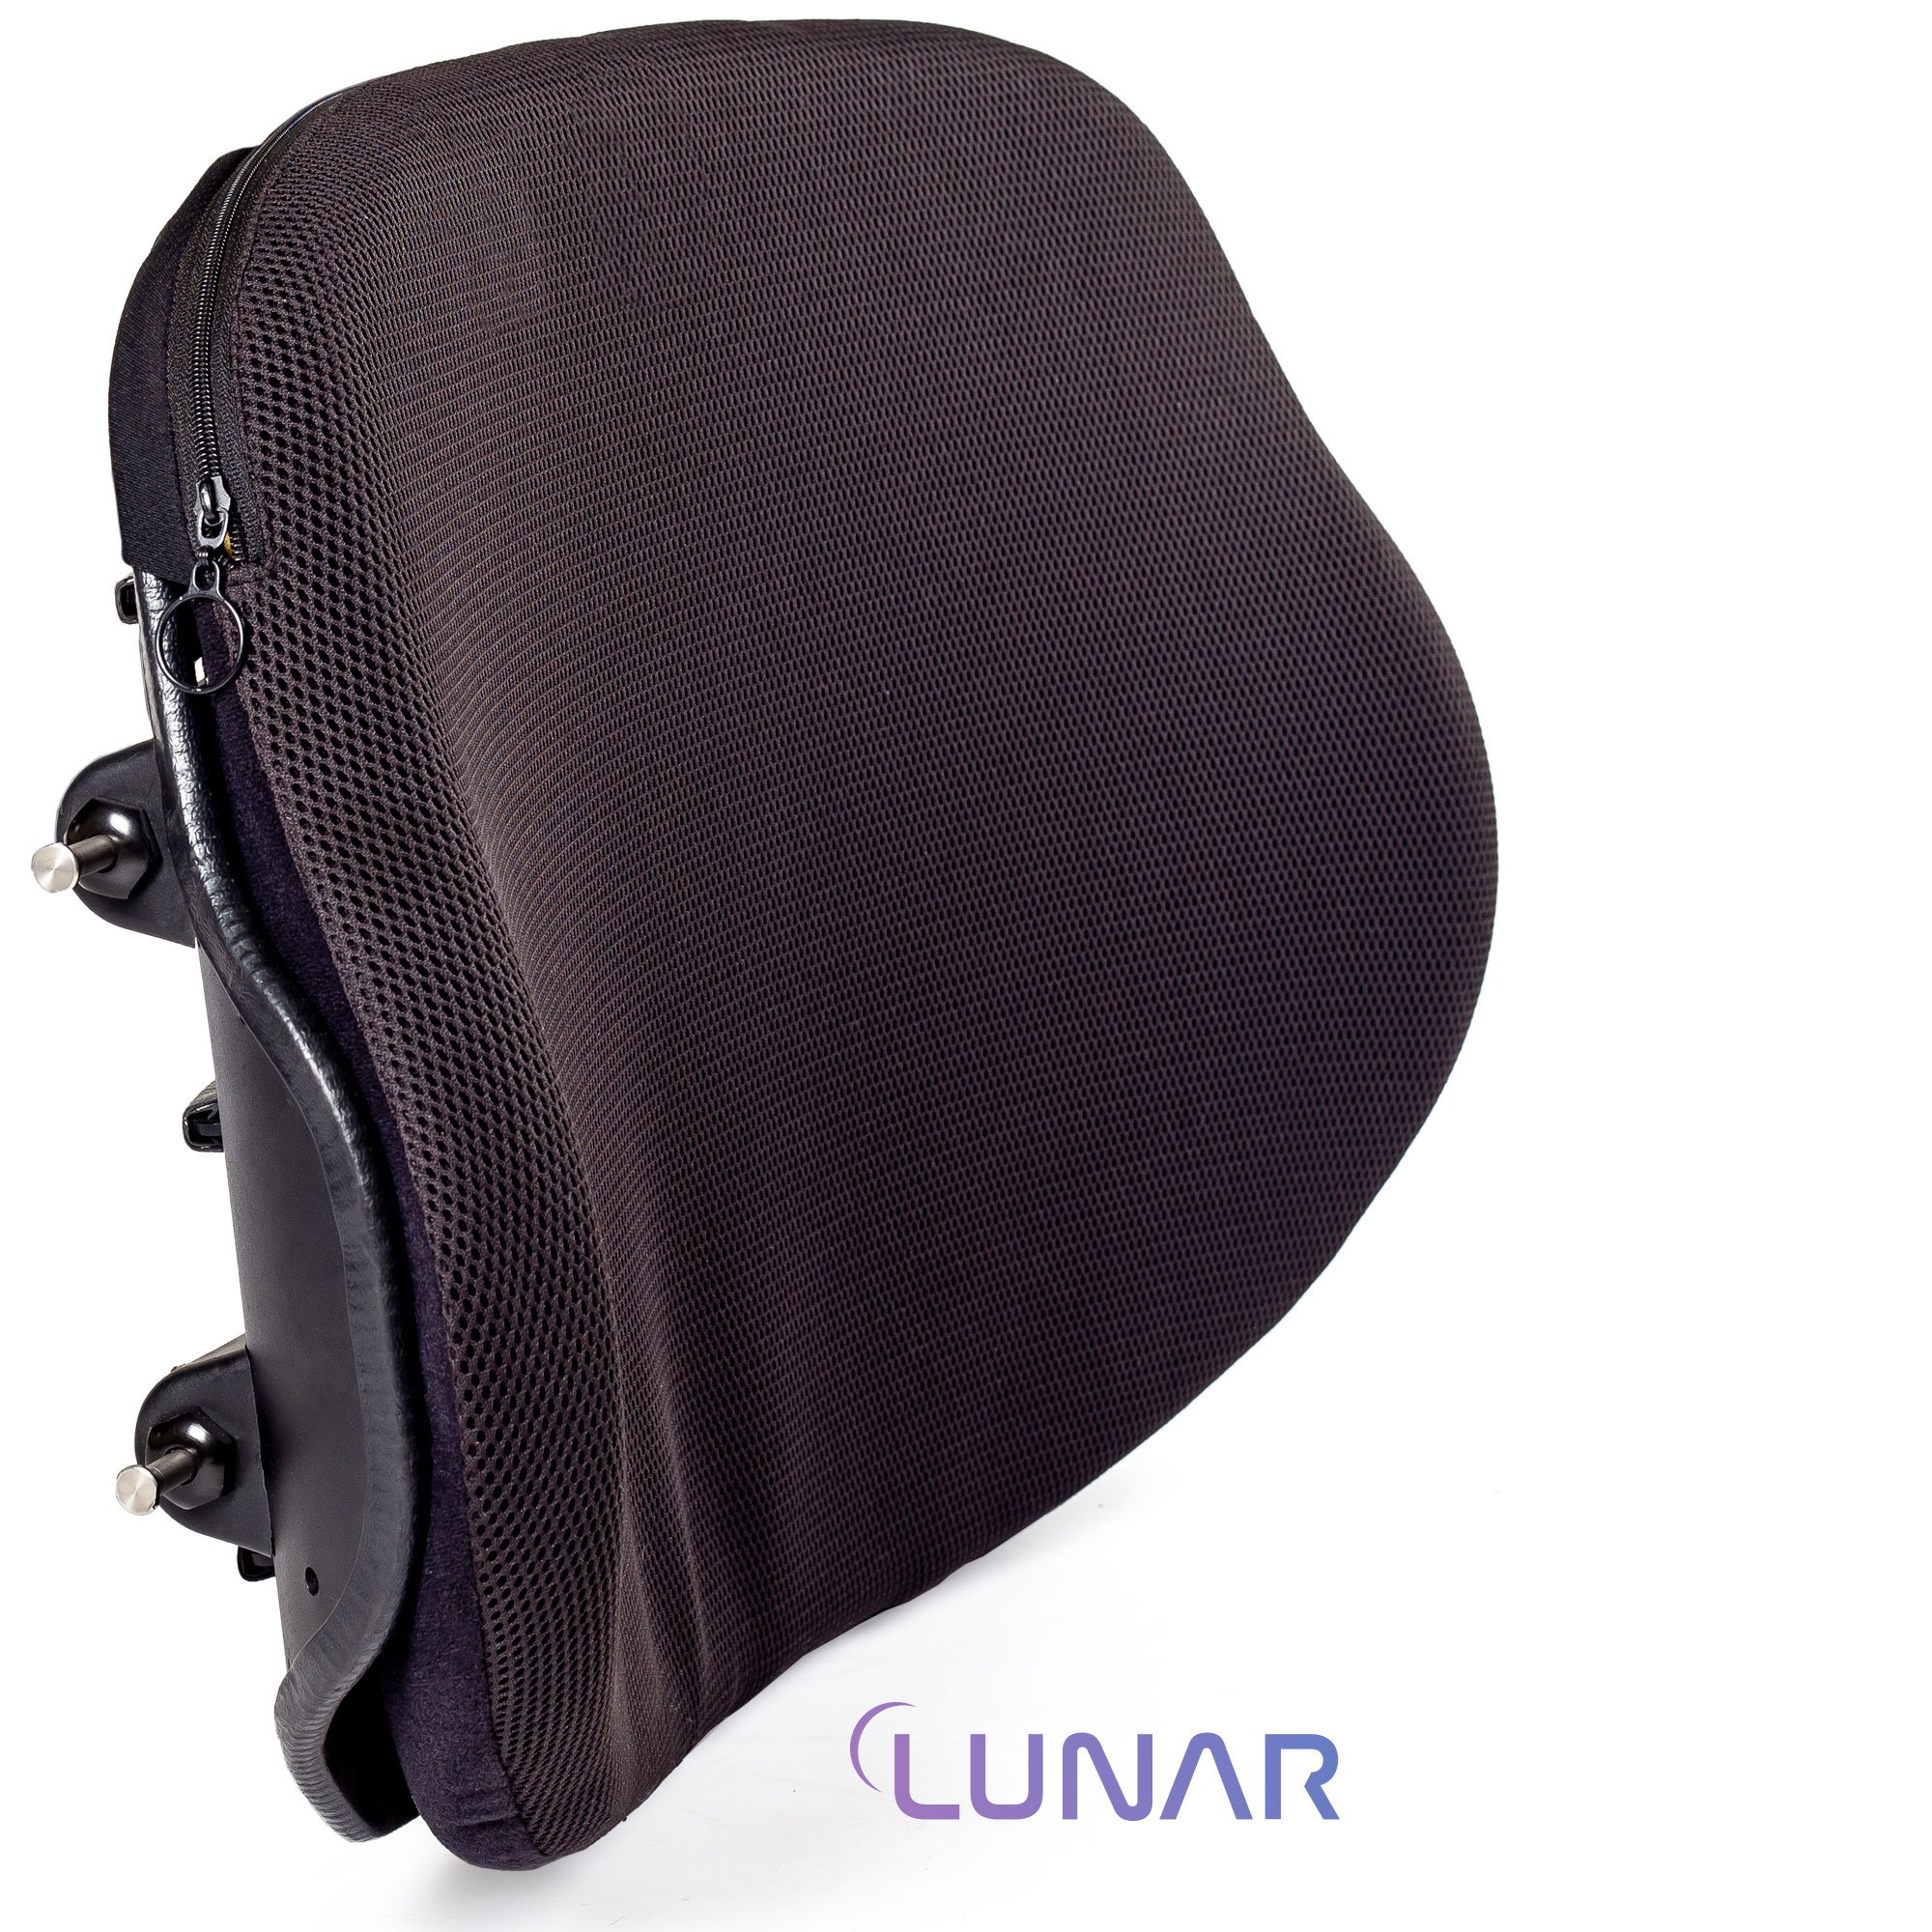 backrest Lunar Heavy Duty